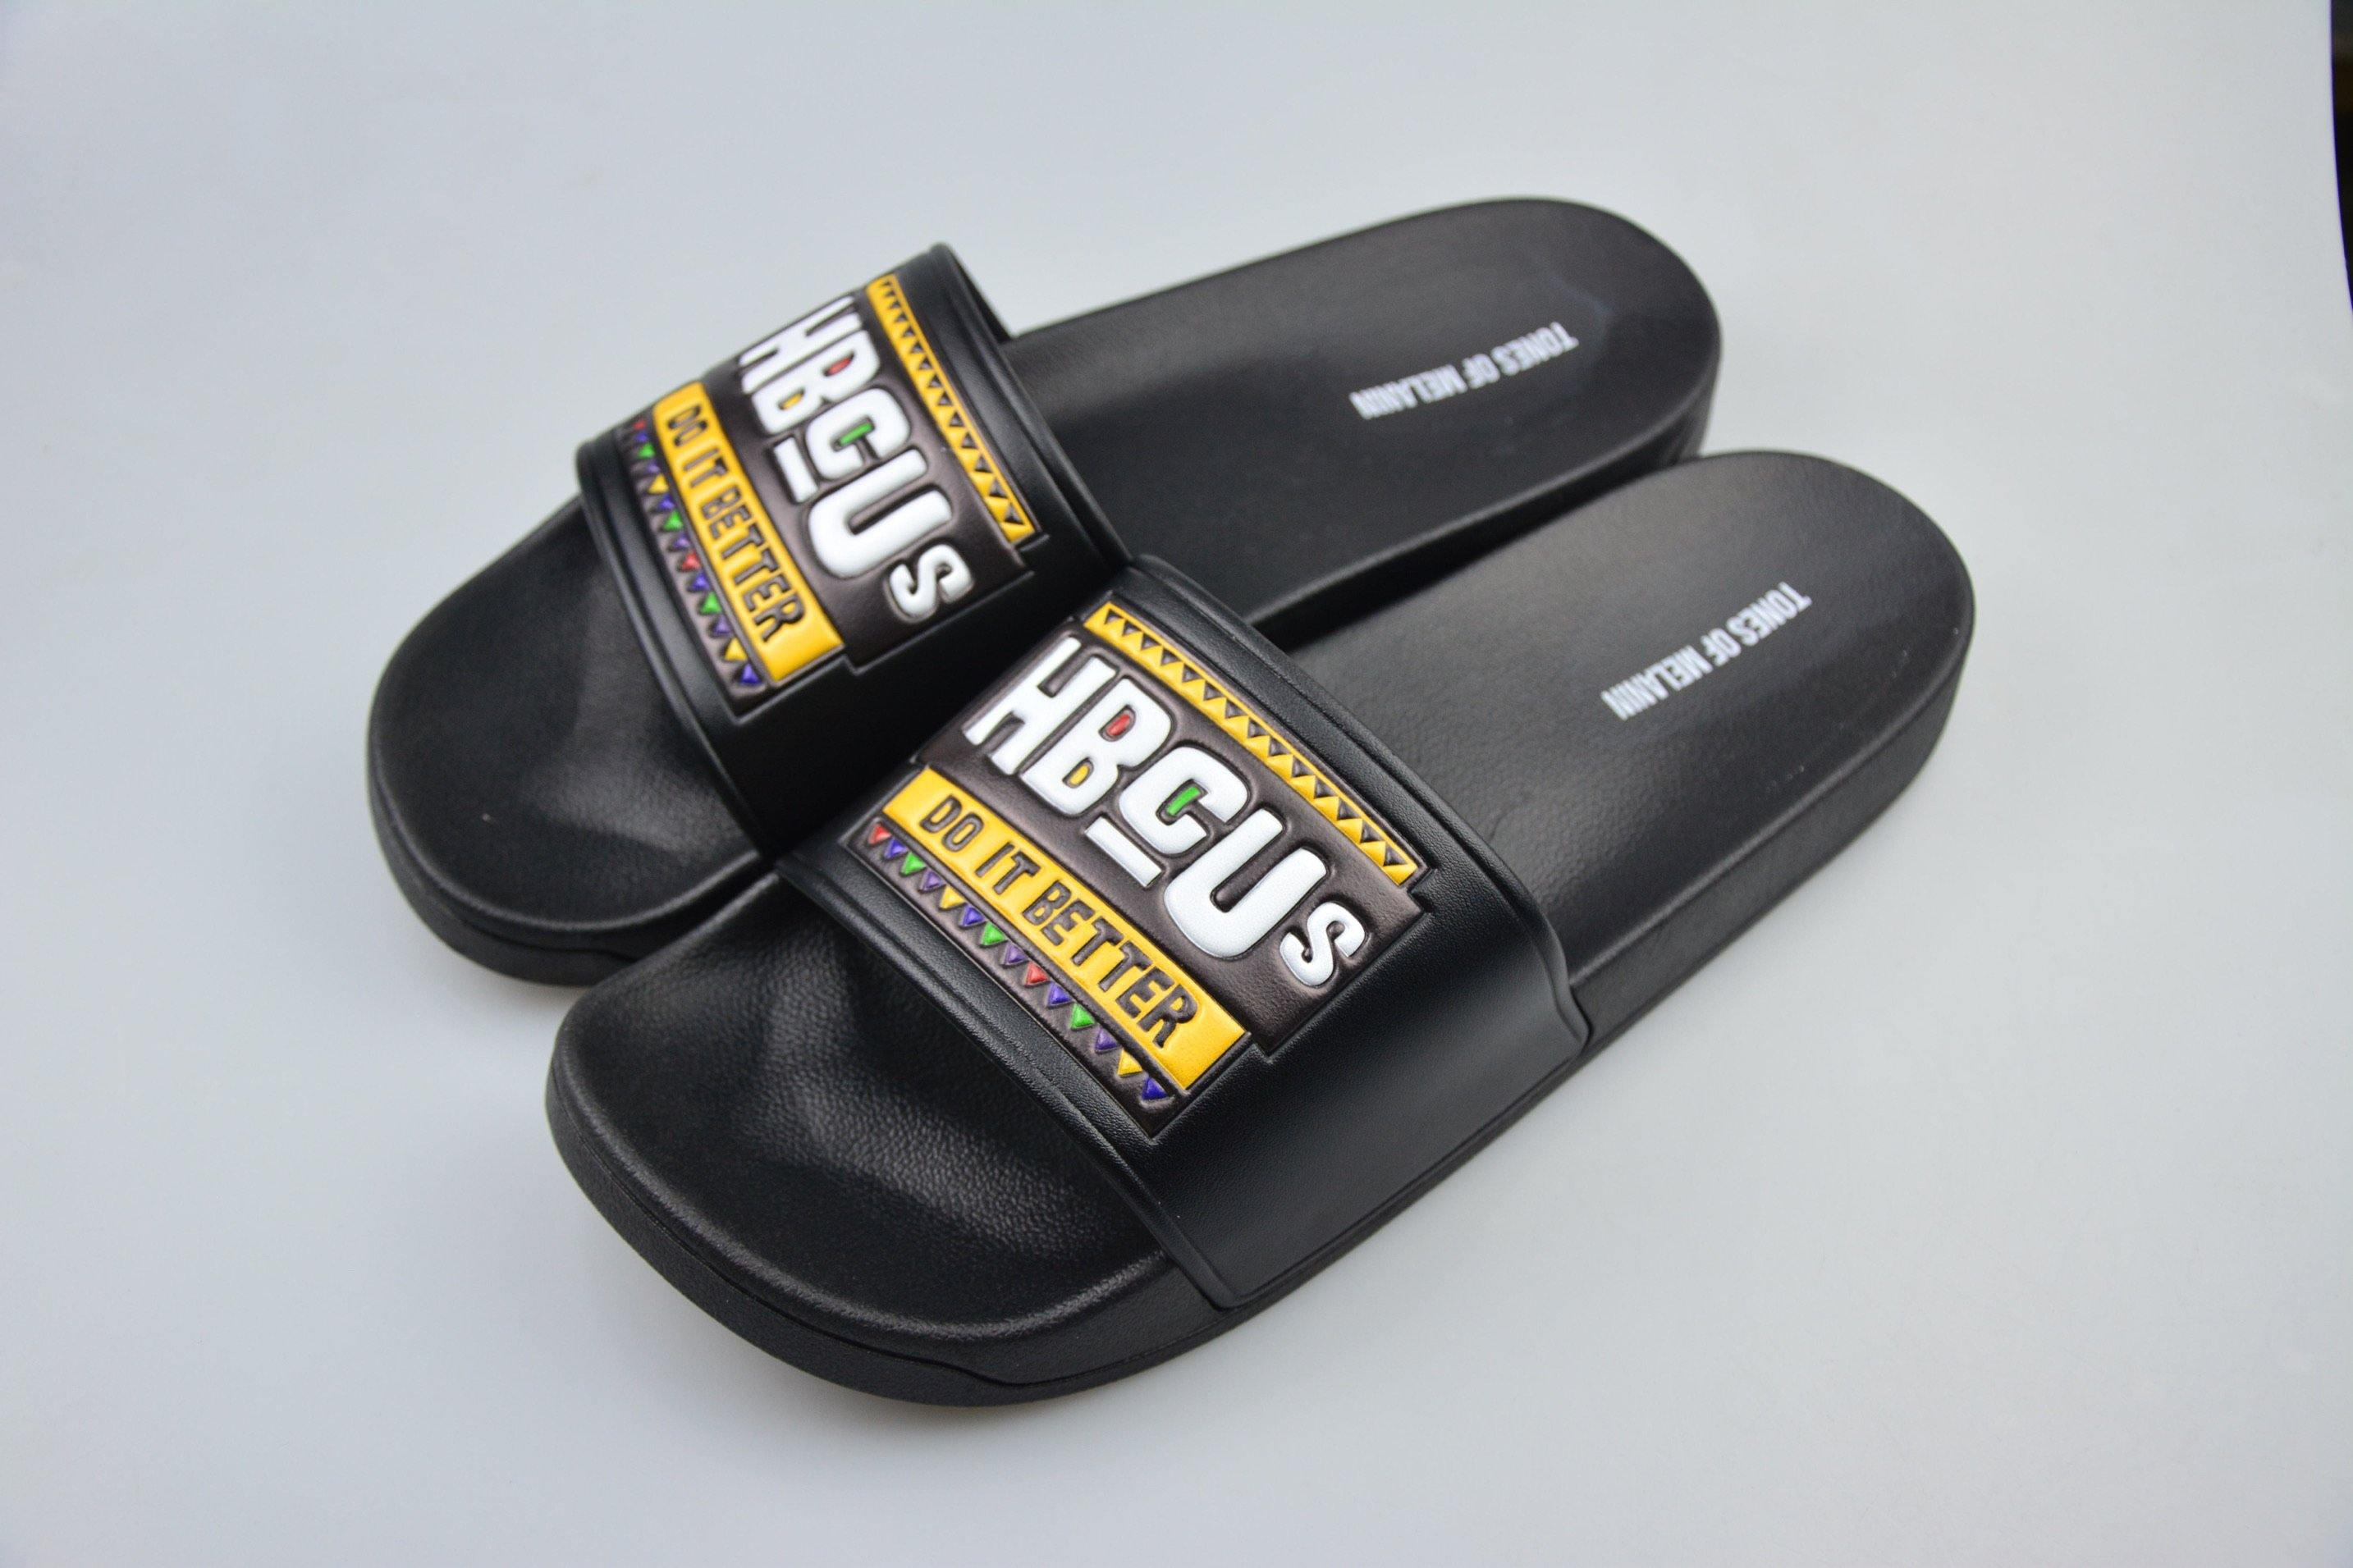 Black HBCUs do it better slides(PREORDER PLEASE ALLOW 4-5 WEEKS FOR SHIPPING)